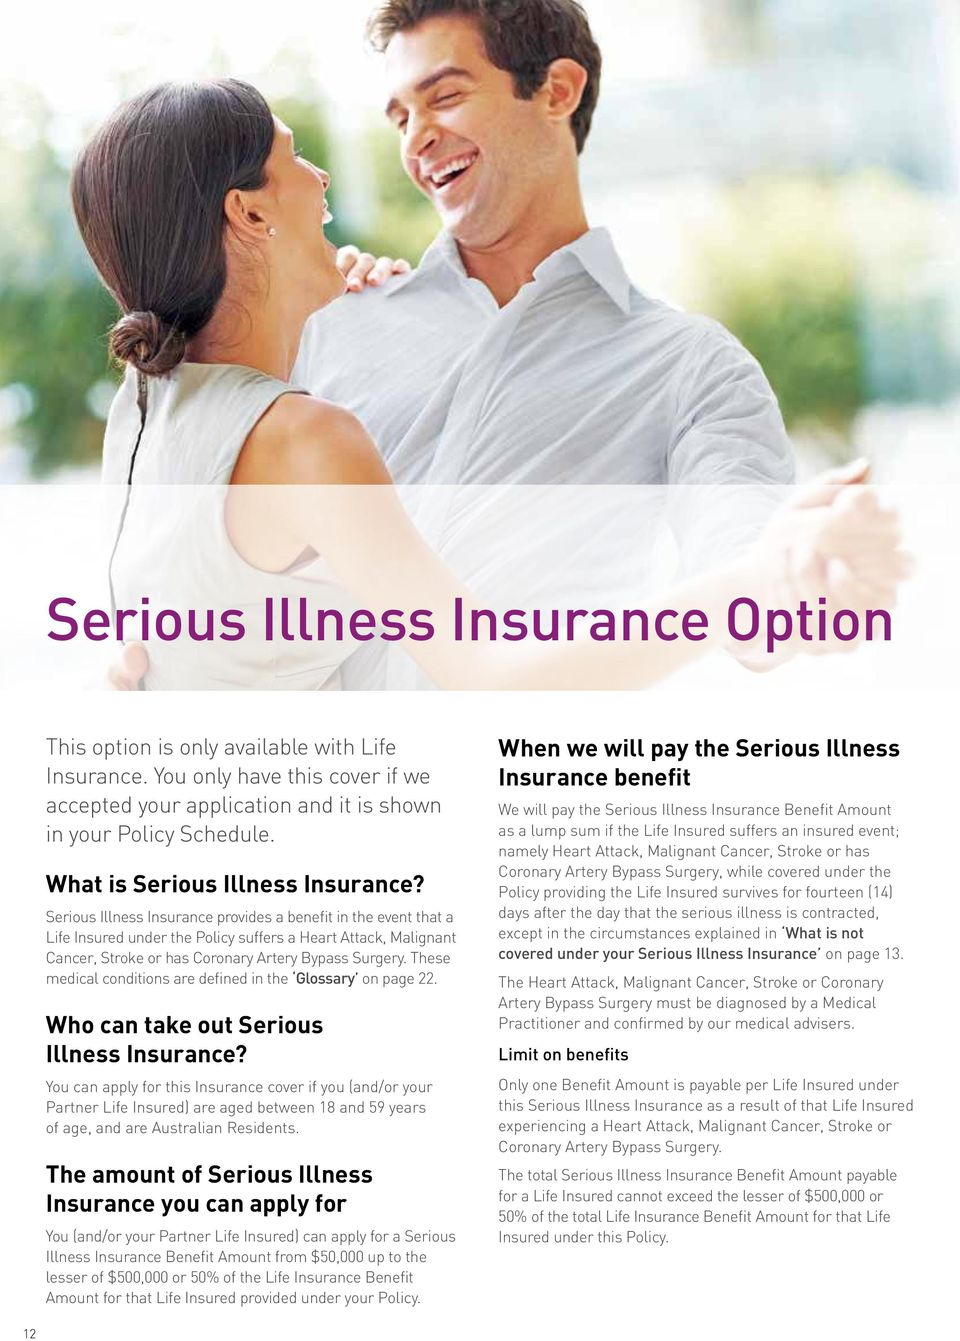 Serious Illness Insurance provides a benefit in the event that a Life Insured under the Policy suffers a Heart Attack, Malignant Cancer, Stroke or has Coronary Artery Bypass Surgery.